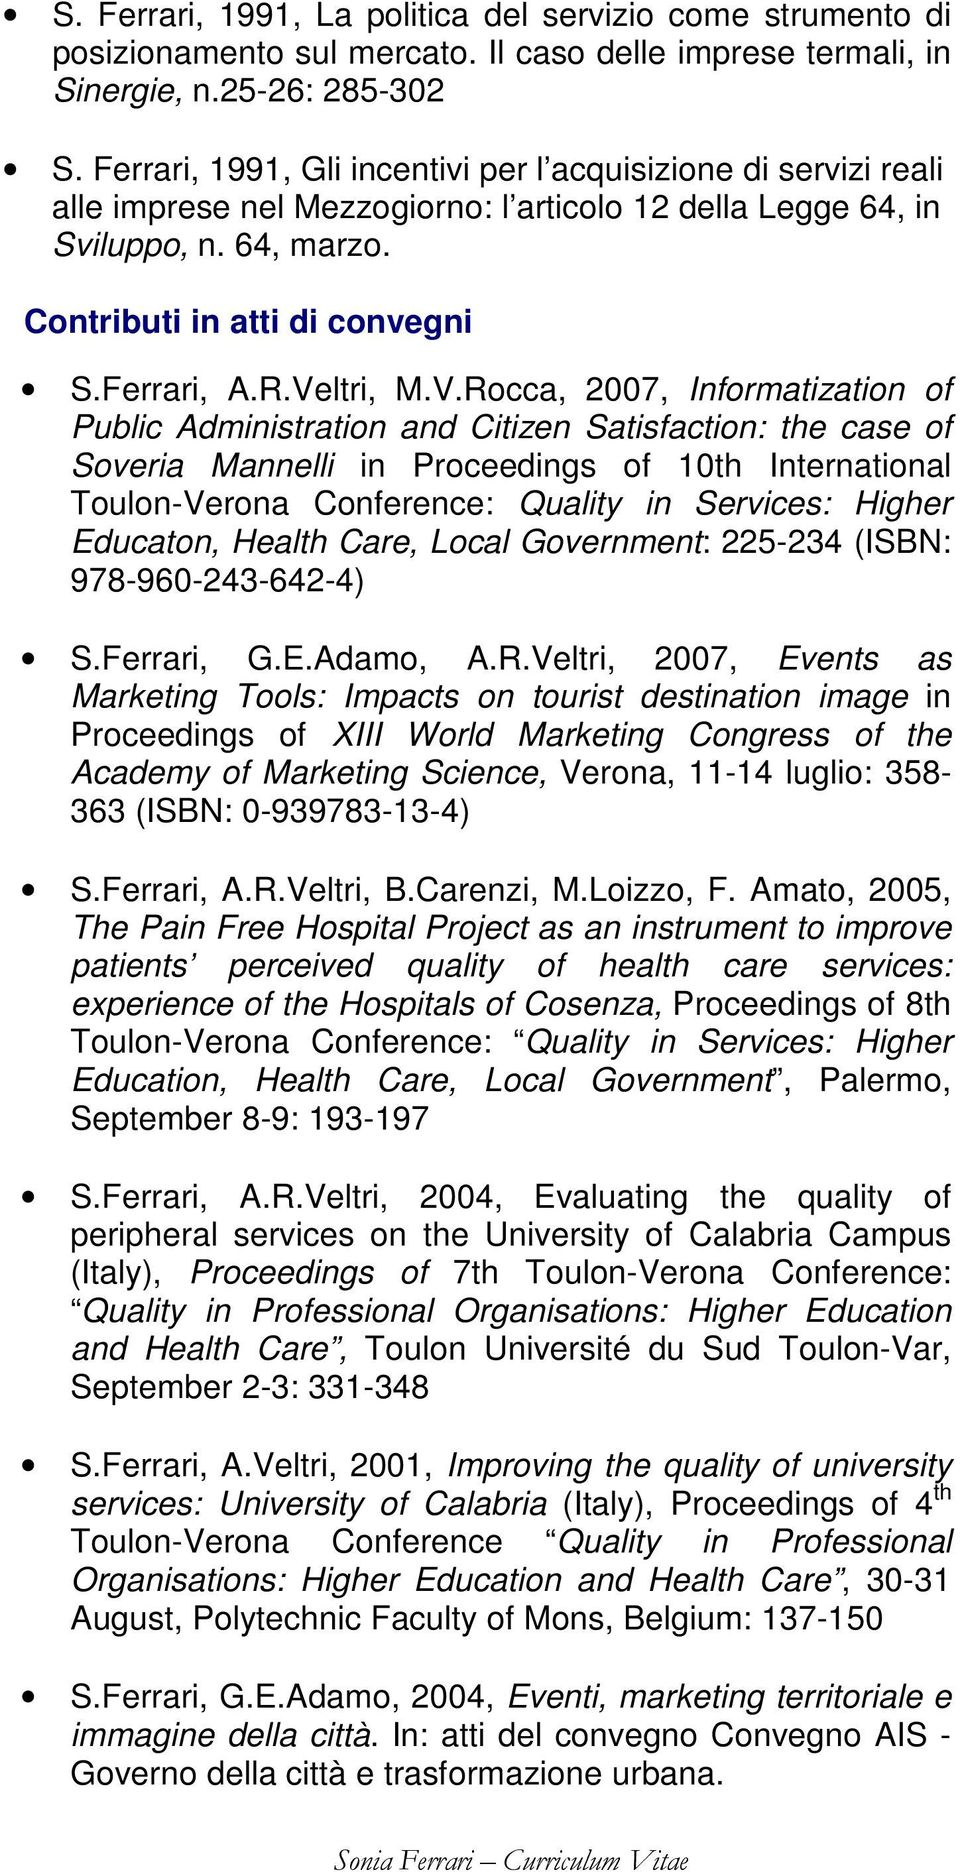 Veltri, M.V.Rocca, 2007, Informatization of Public Administration and Citizen Satisfaction: the case of Soveria Mannelli in Proceedings of 10th International Toulon-Verona Conference: Quality in